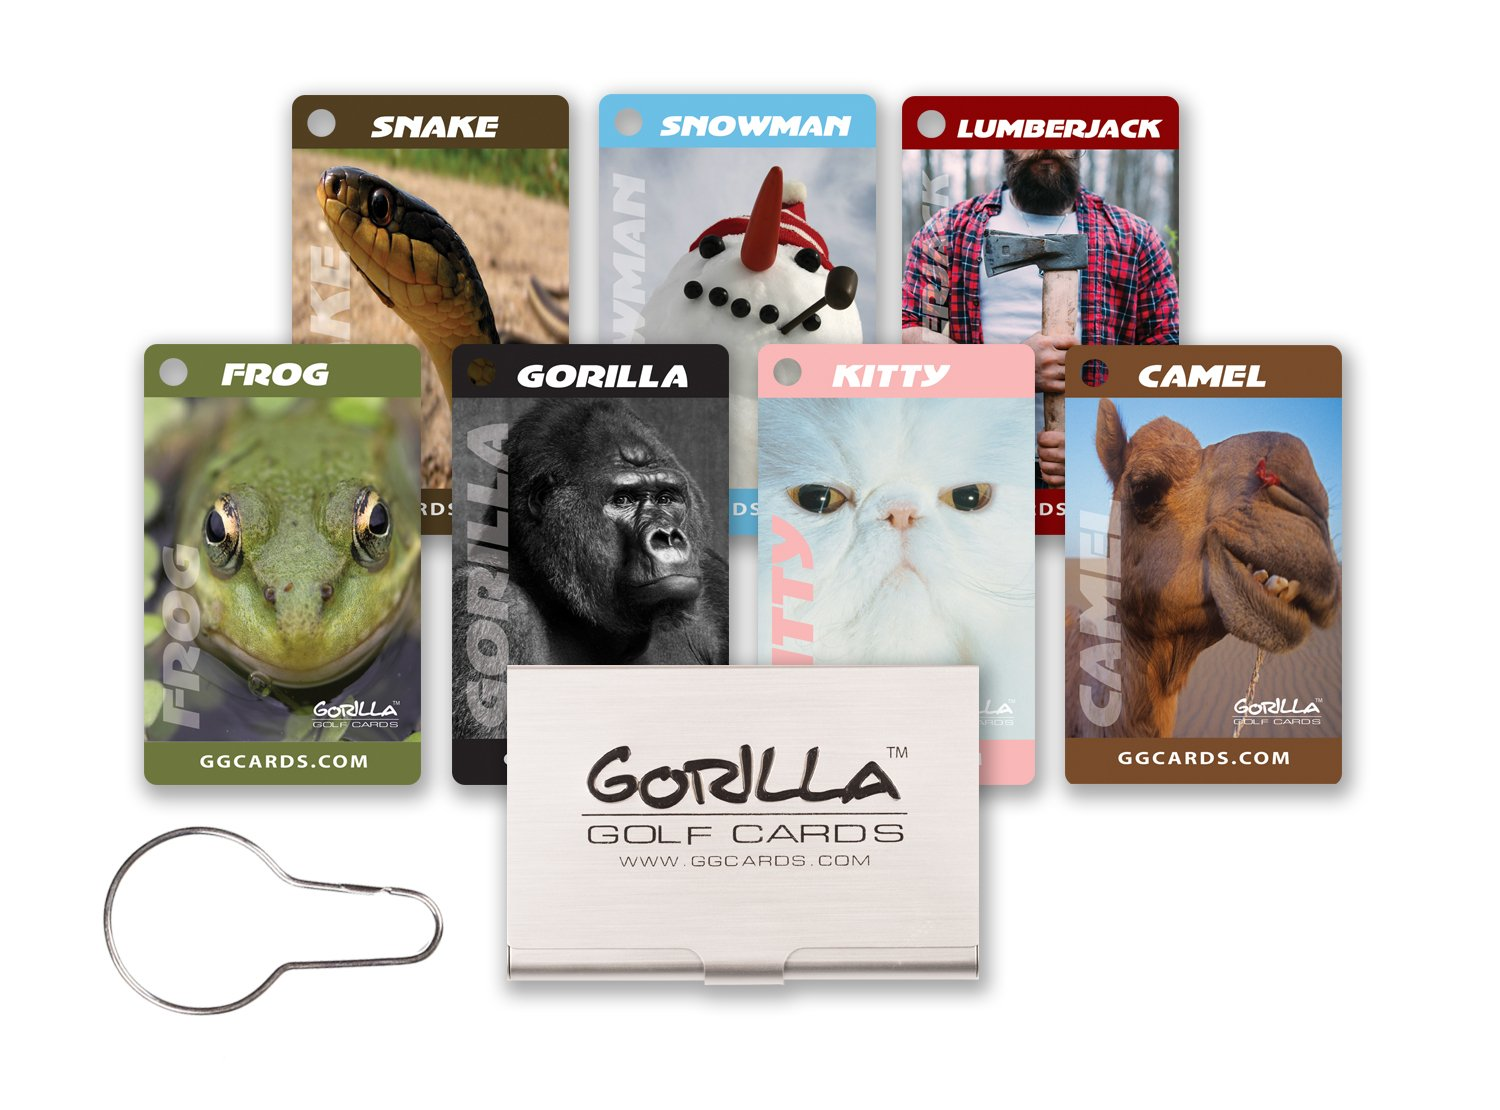 Gorilla Golf Cards : The On-Course Golf Betting Game